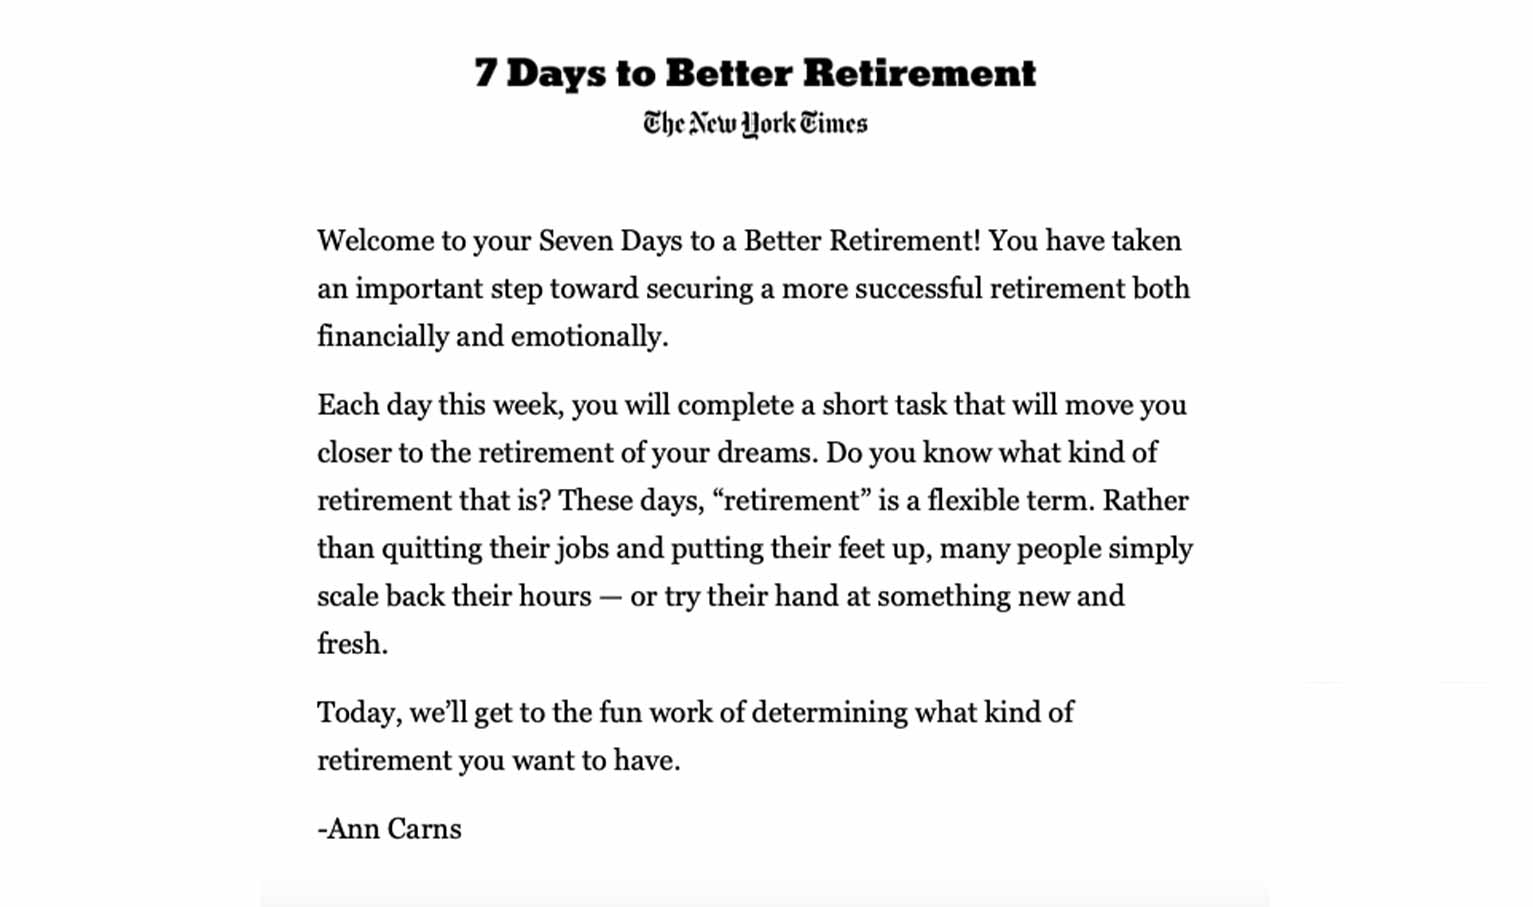 """An email from The New York Times promoting its """"7 Days to a Better Retirement"""" series."""